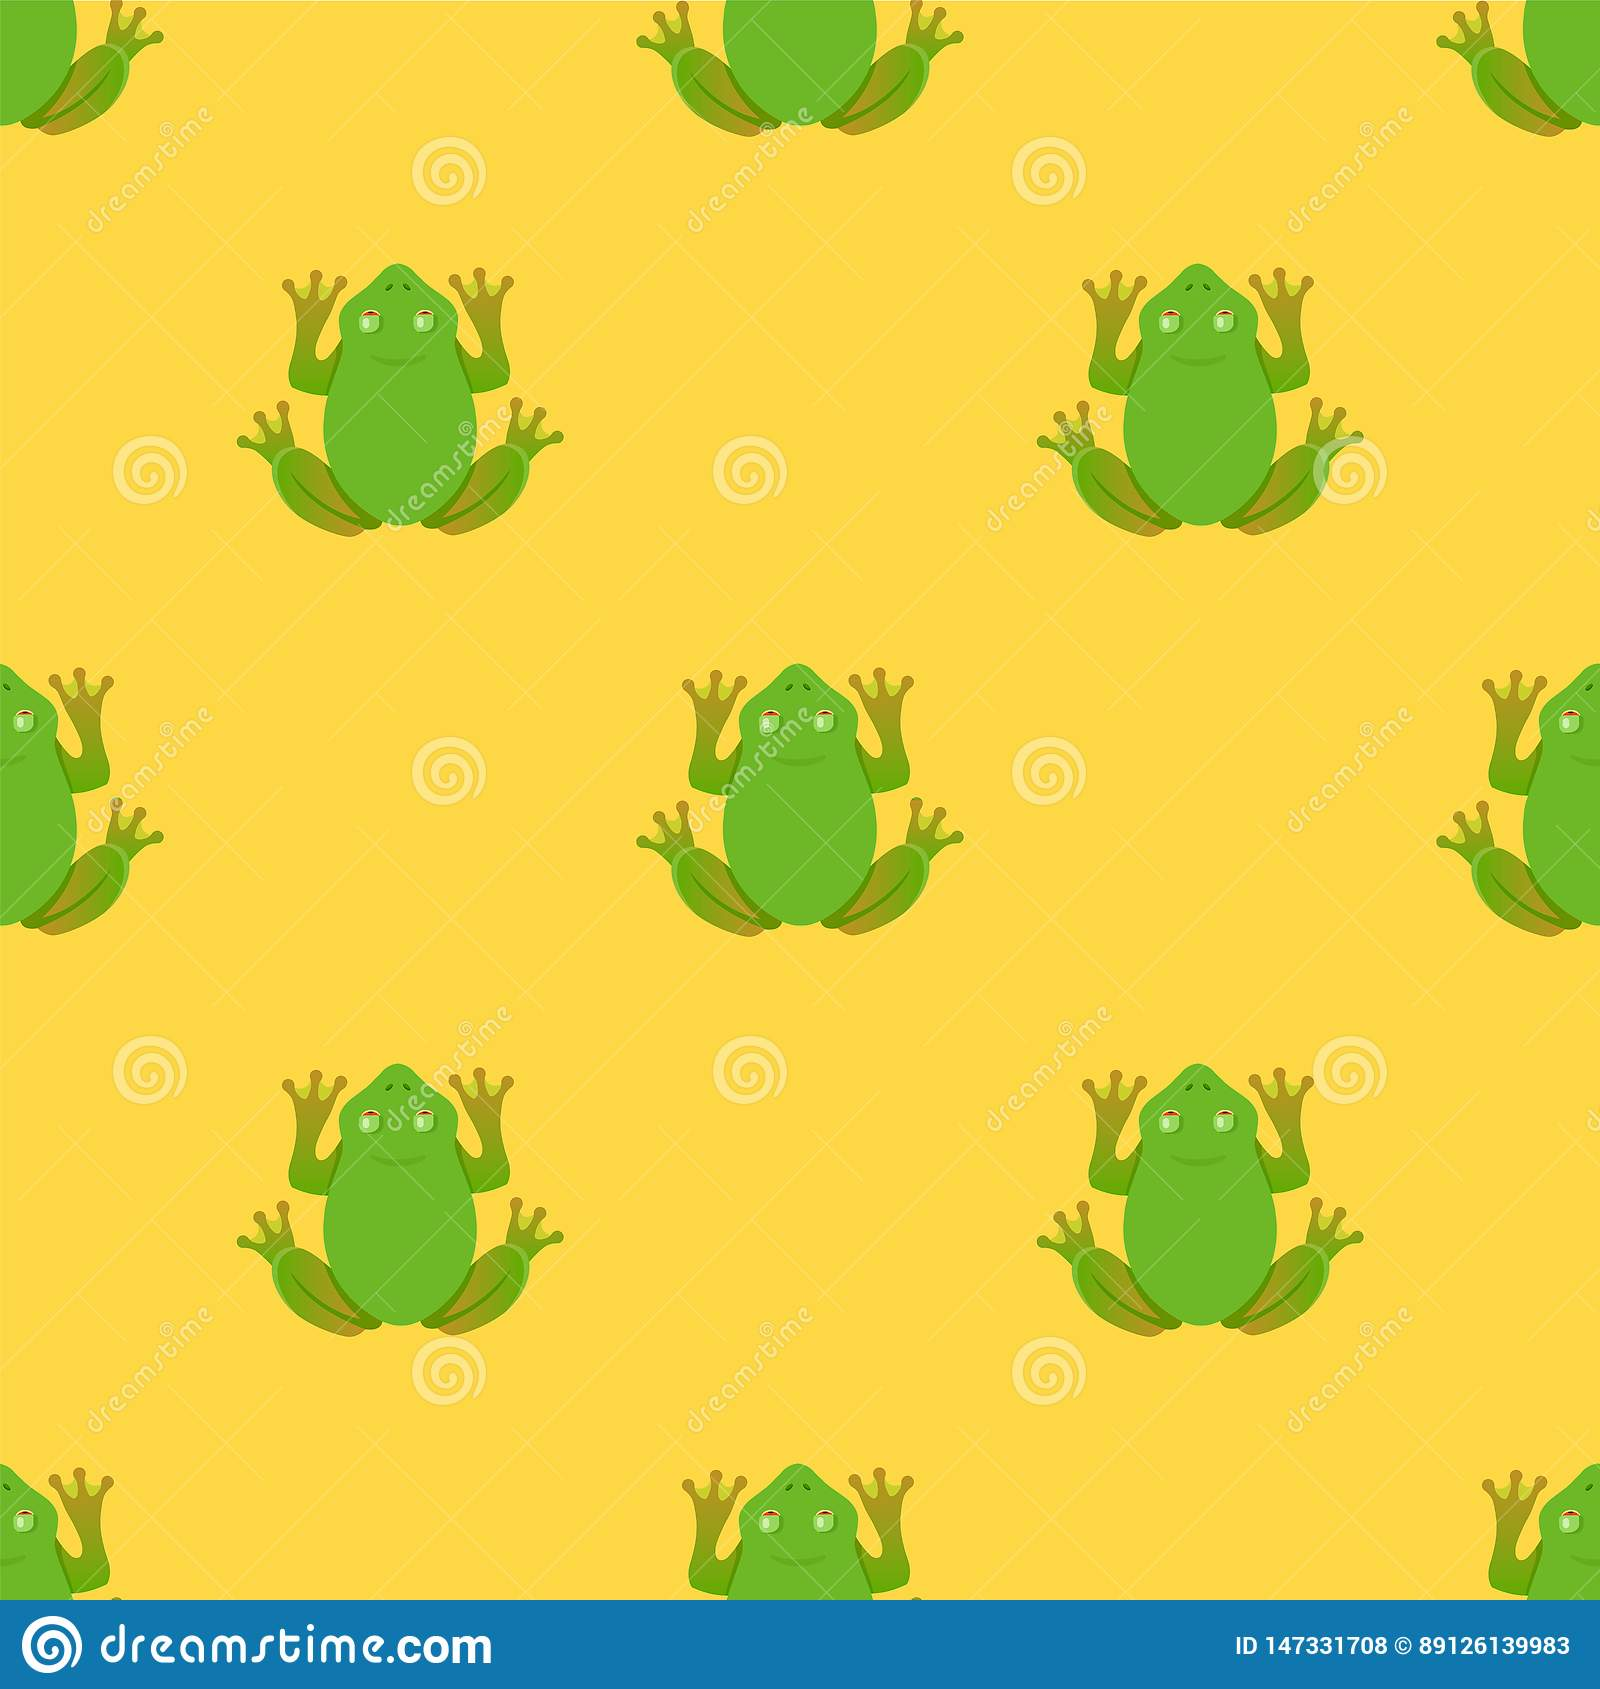 Frogs pattern on yellow background.